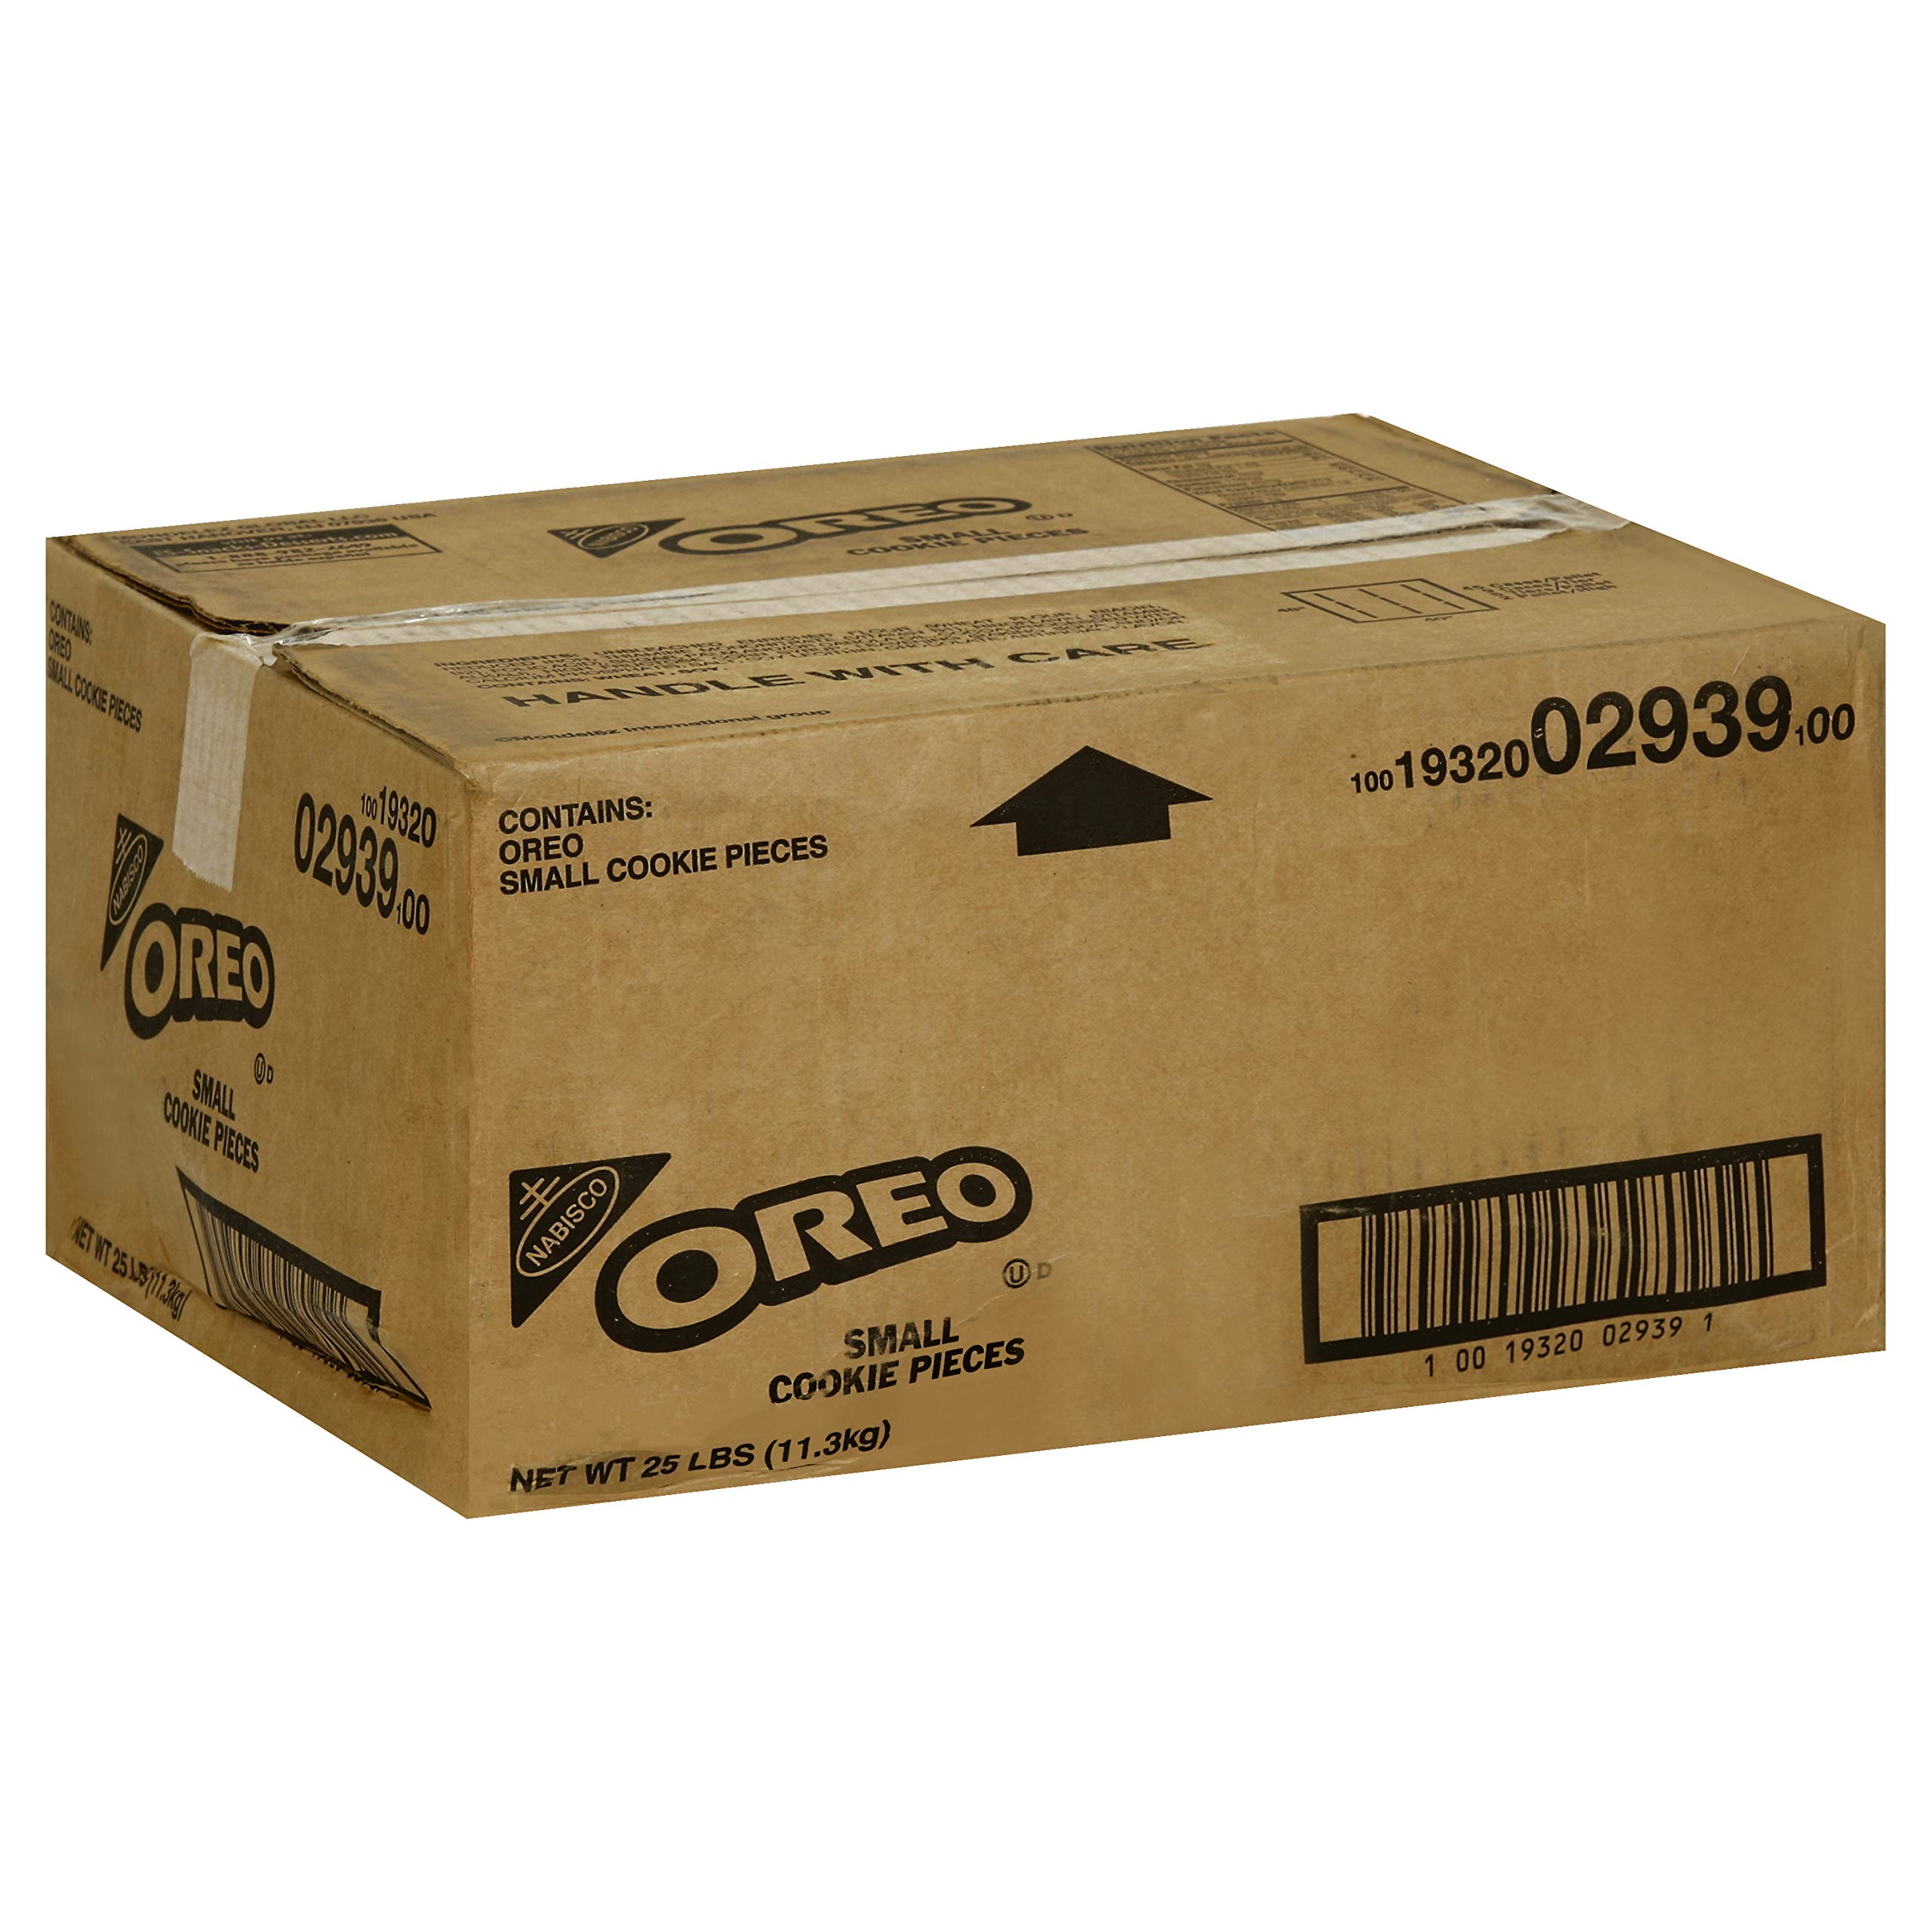 Oreo Nabisco Cookie Crumbs, 25 Pound by Oreo (Image #1)